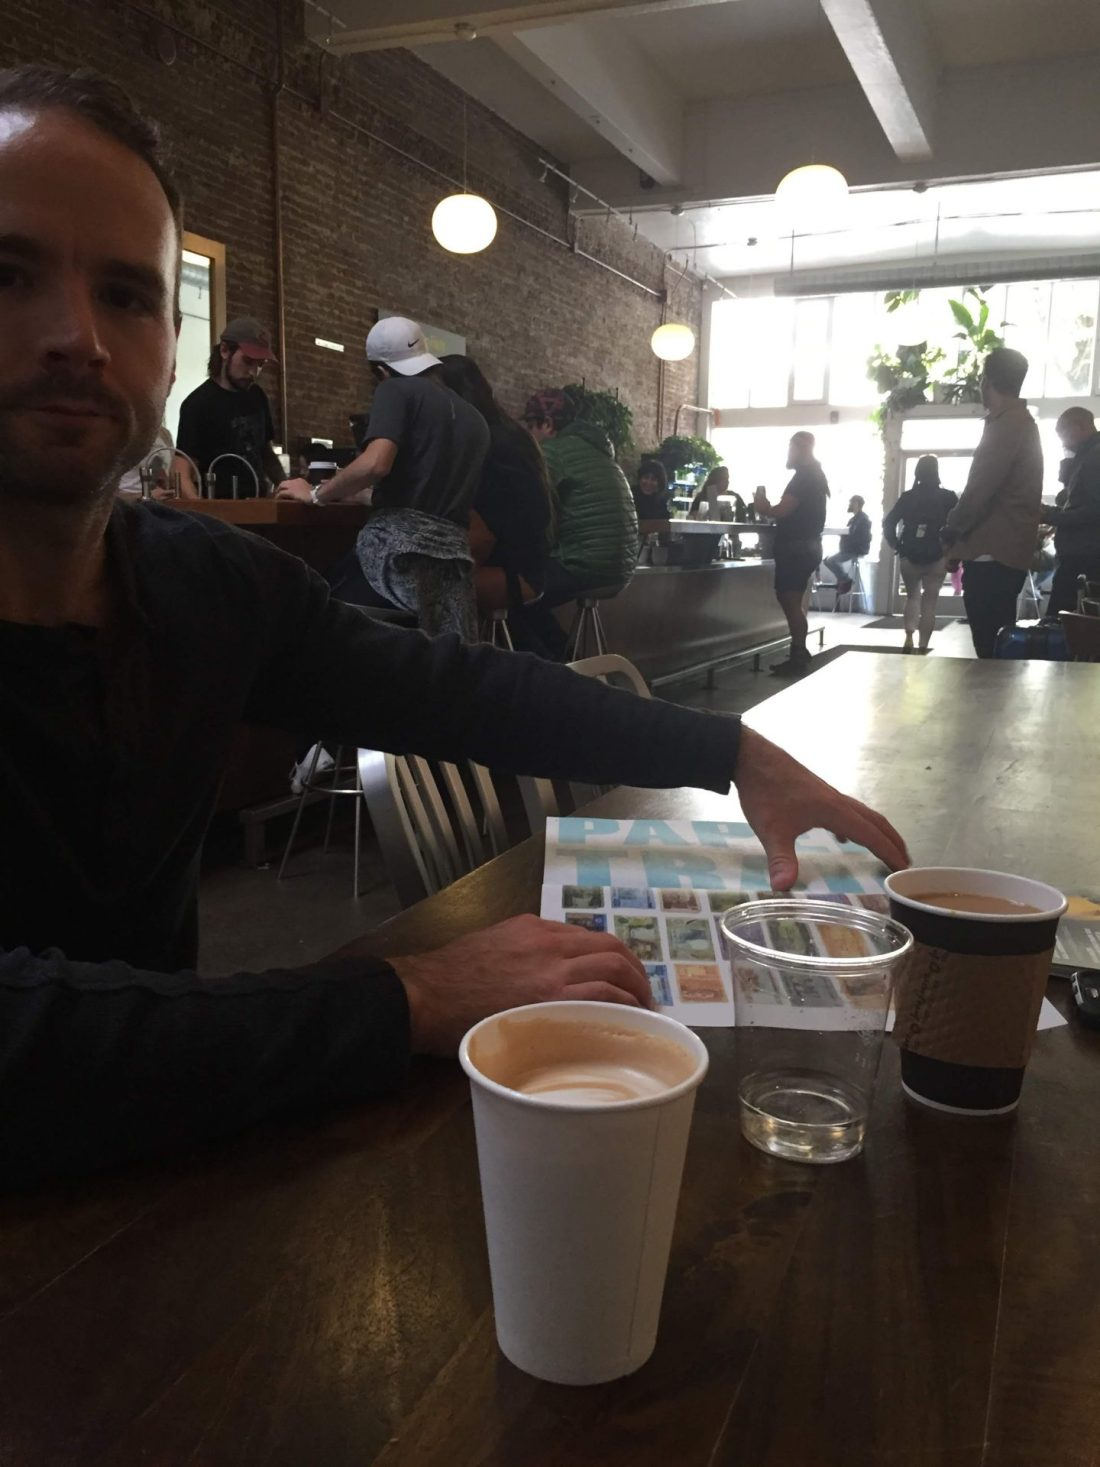 Grabbing coffee from Stumptown Coffee Roasters